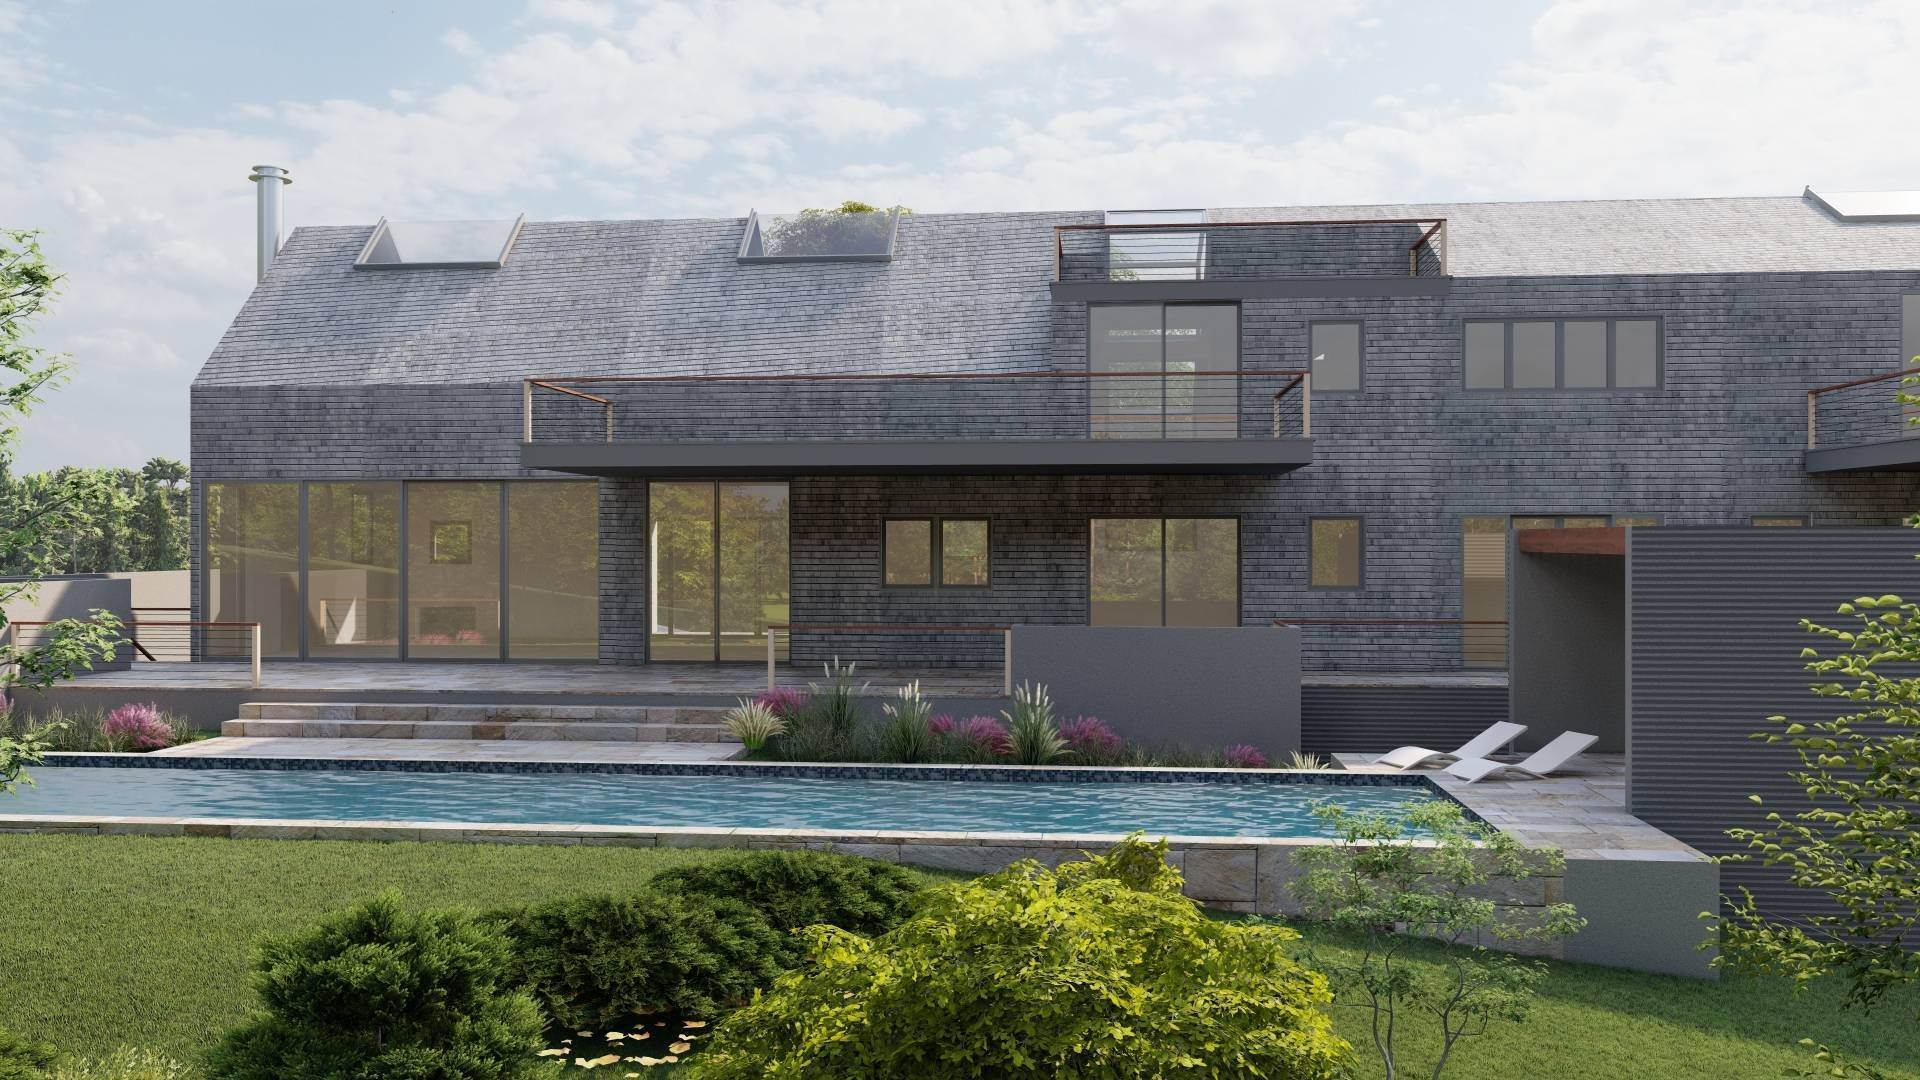 Single Family Home for Sale at Startop New Modern Construction With 360 Water Views 37 Startop Drive, Montauk, NY 11954